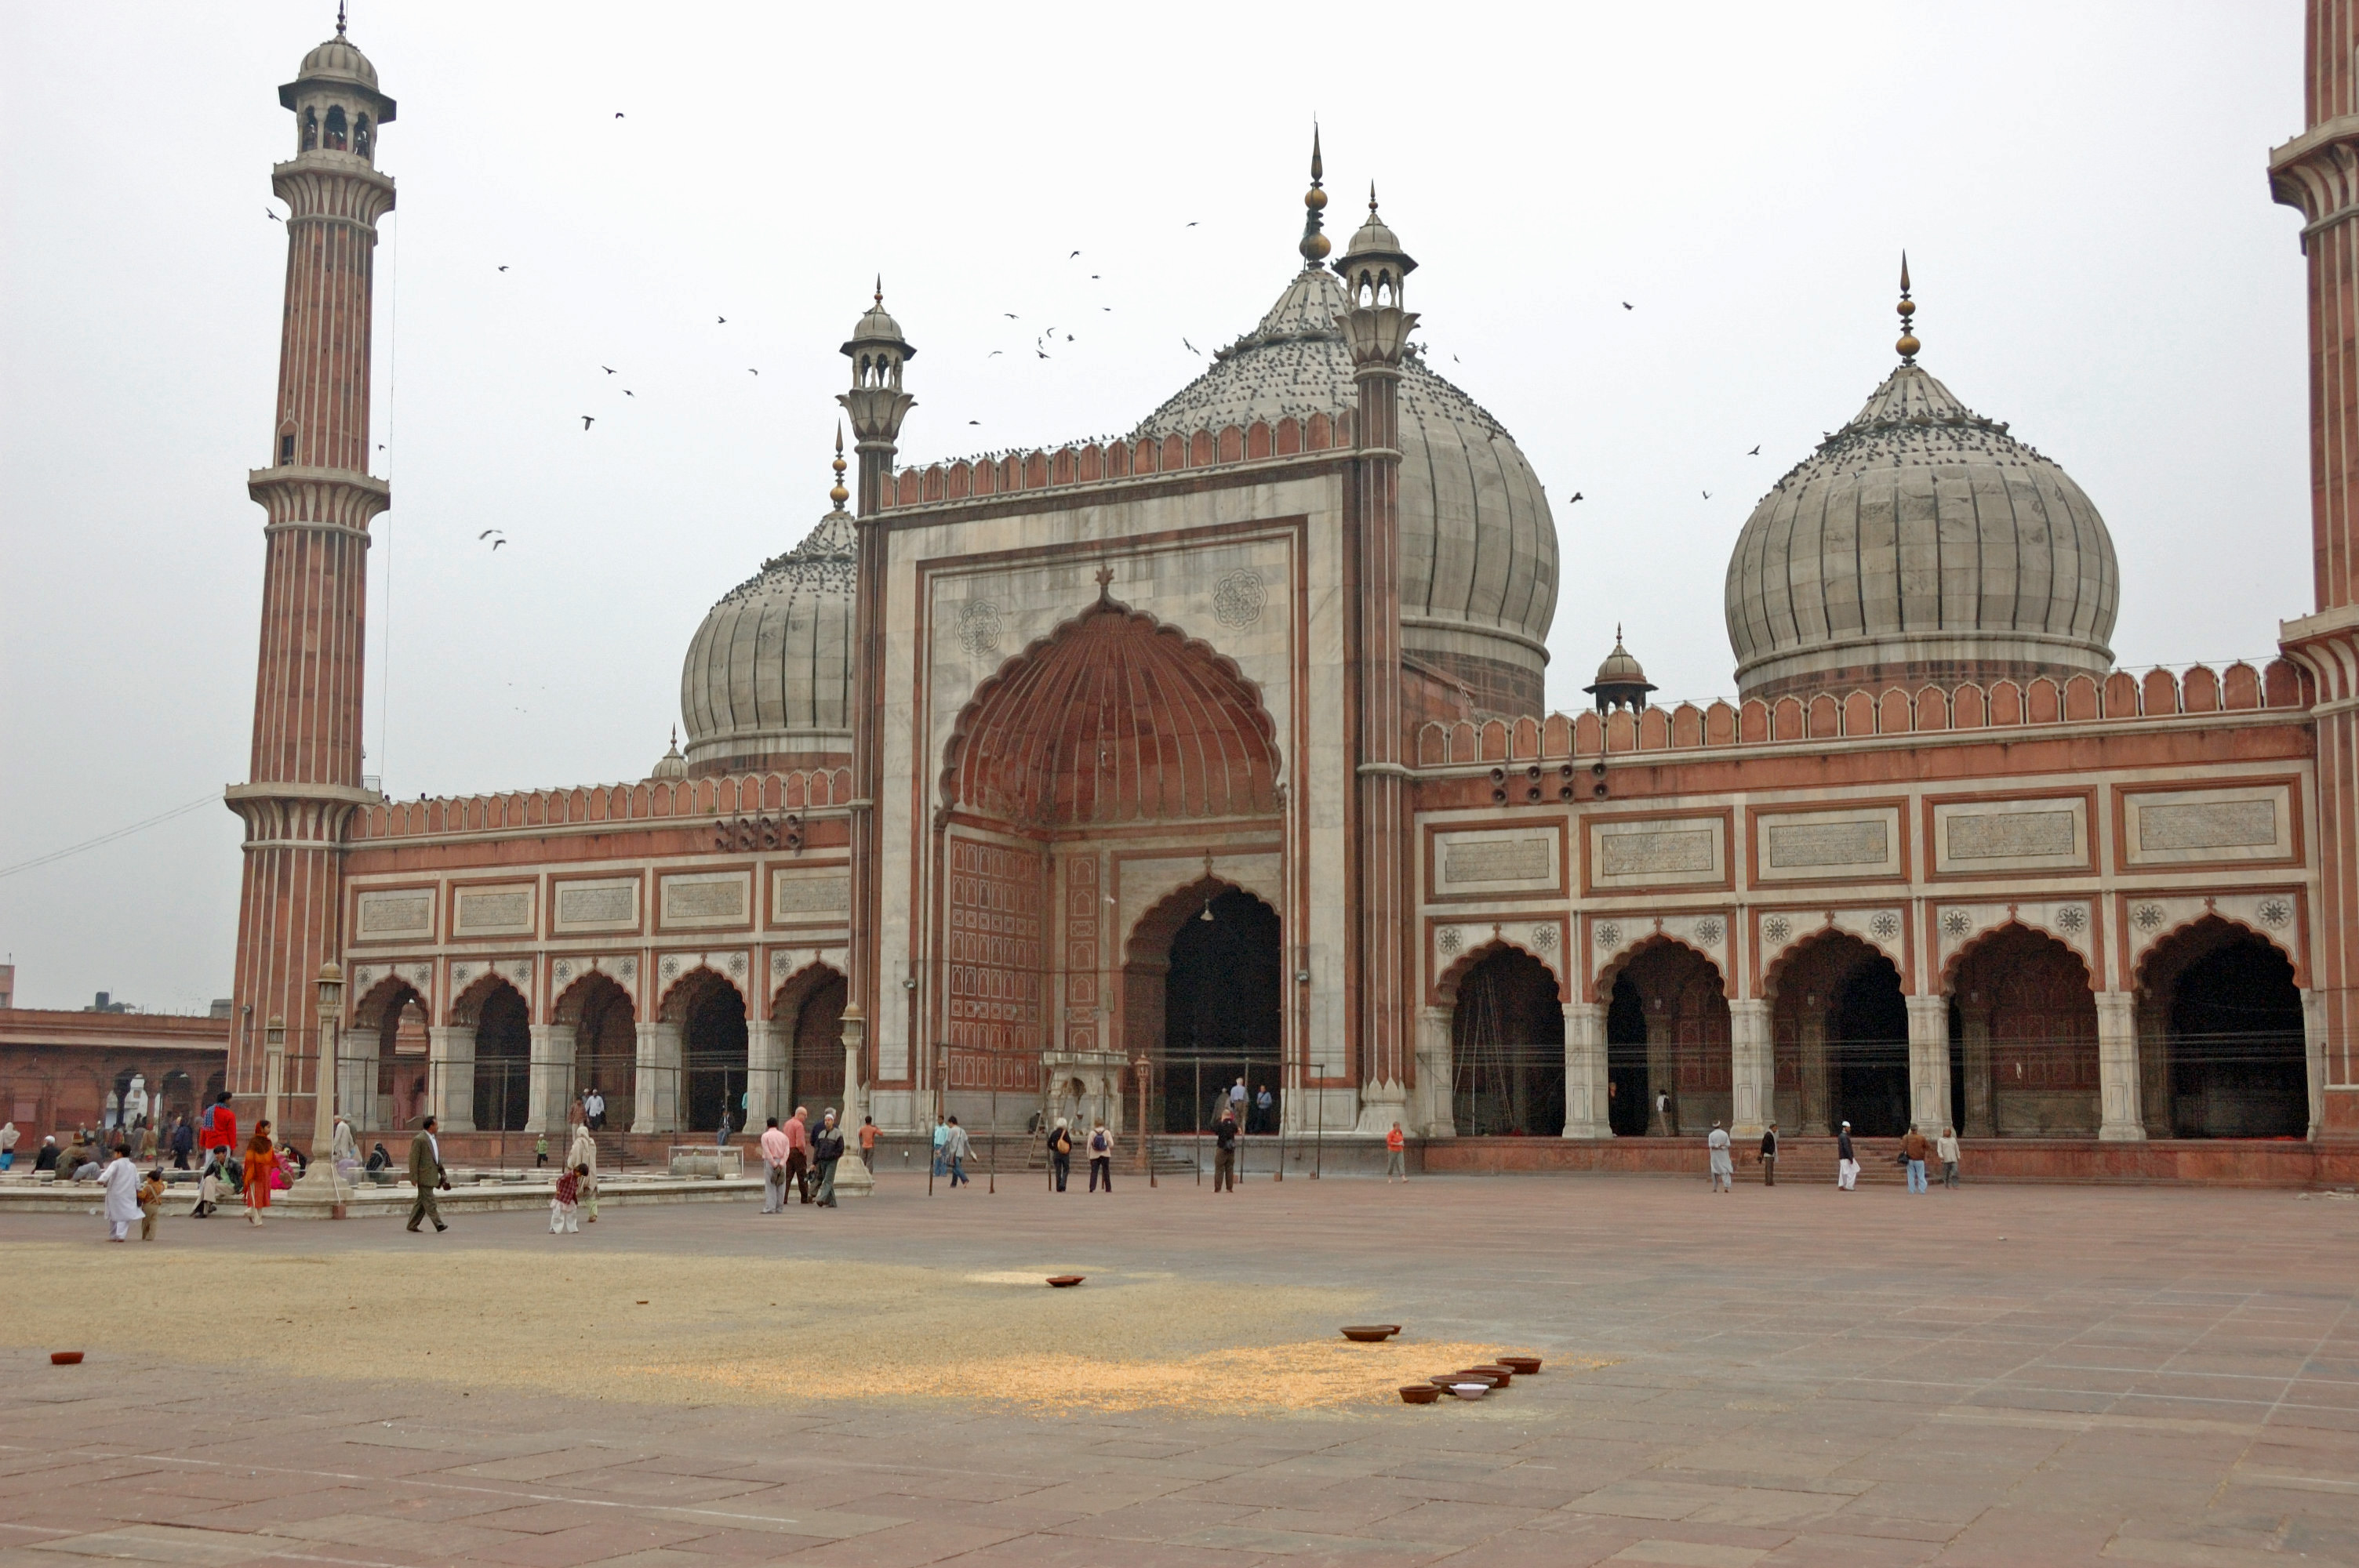 India, New Delhi, Jama Mosque